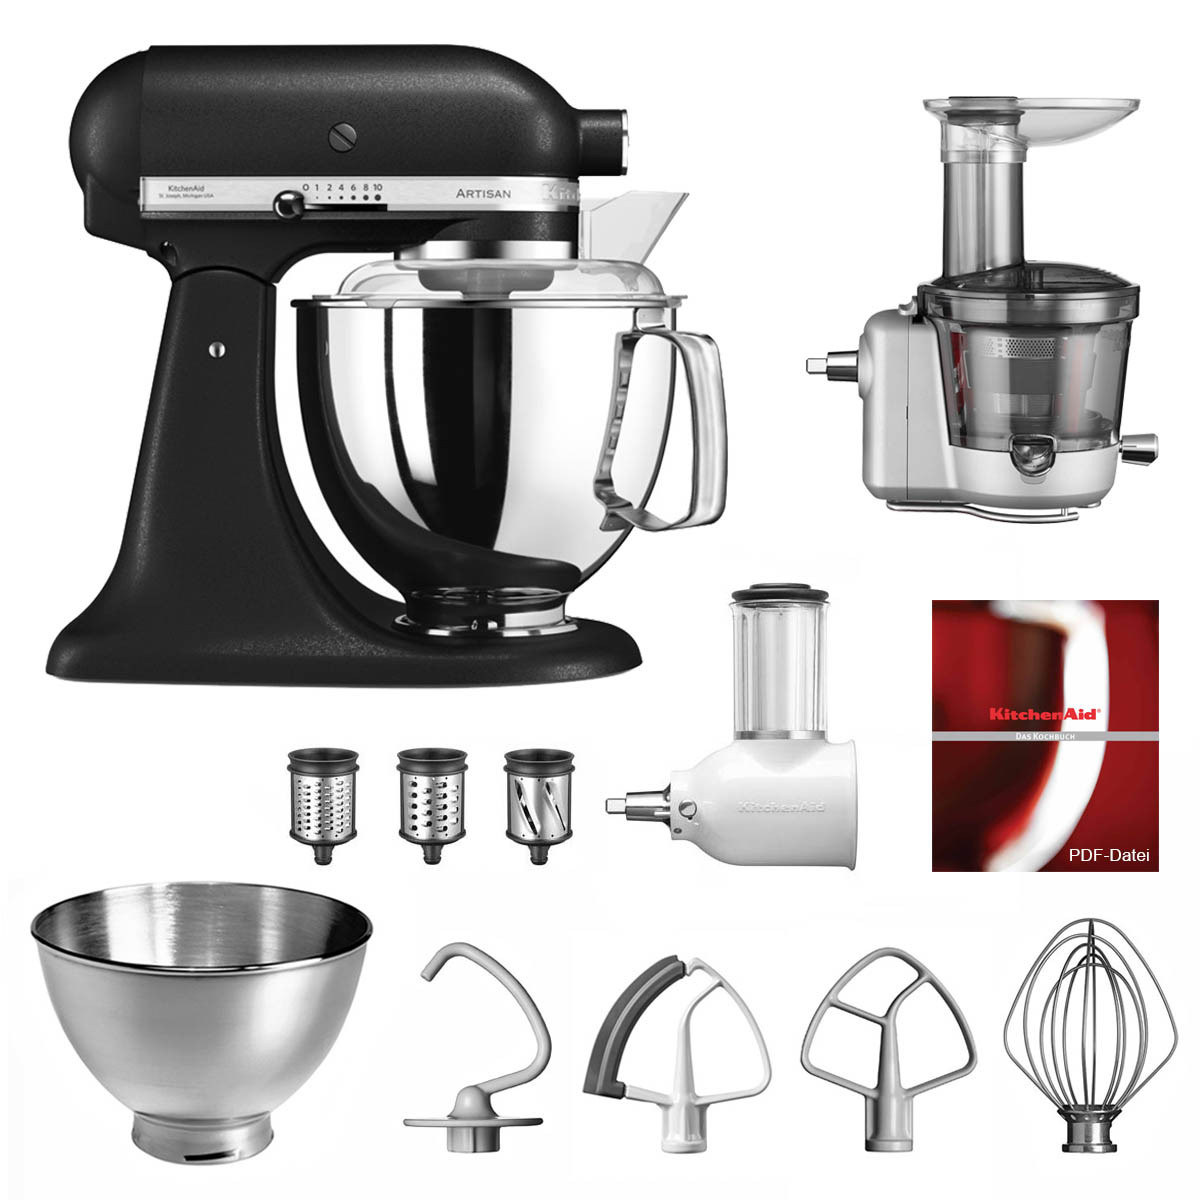 KitchenAid Küchenmaschine 175PS Entsafter Vital-Set Gusseisen